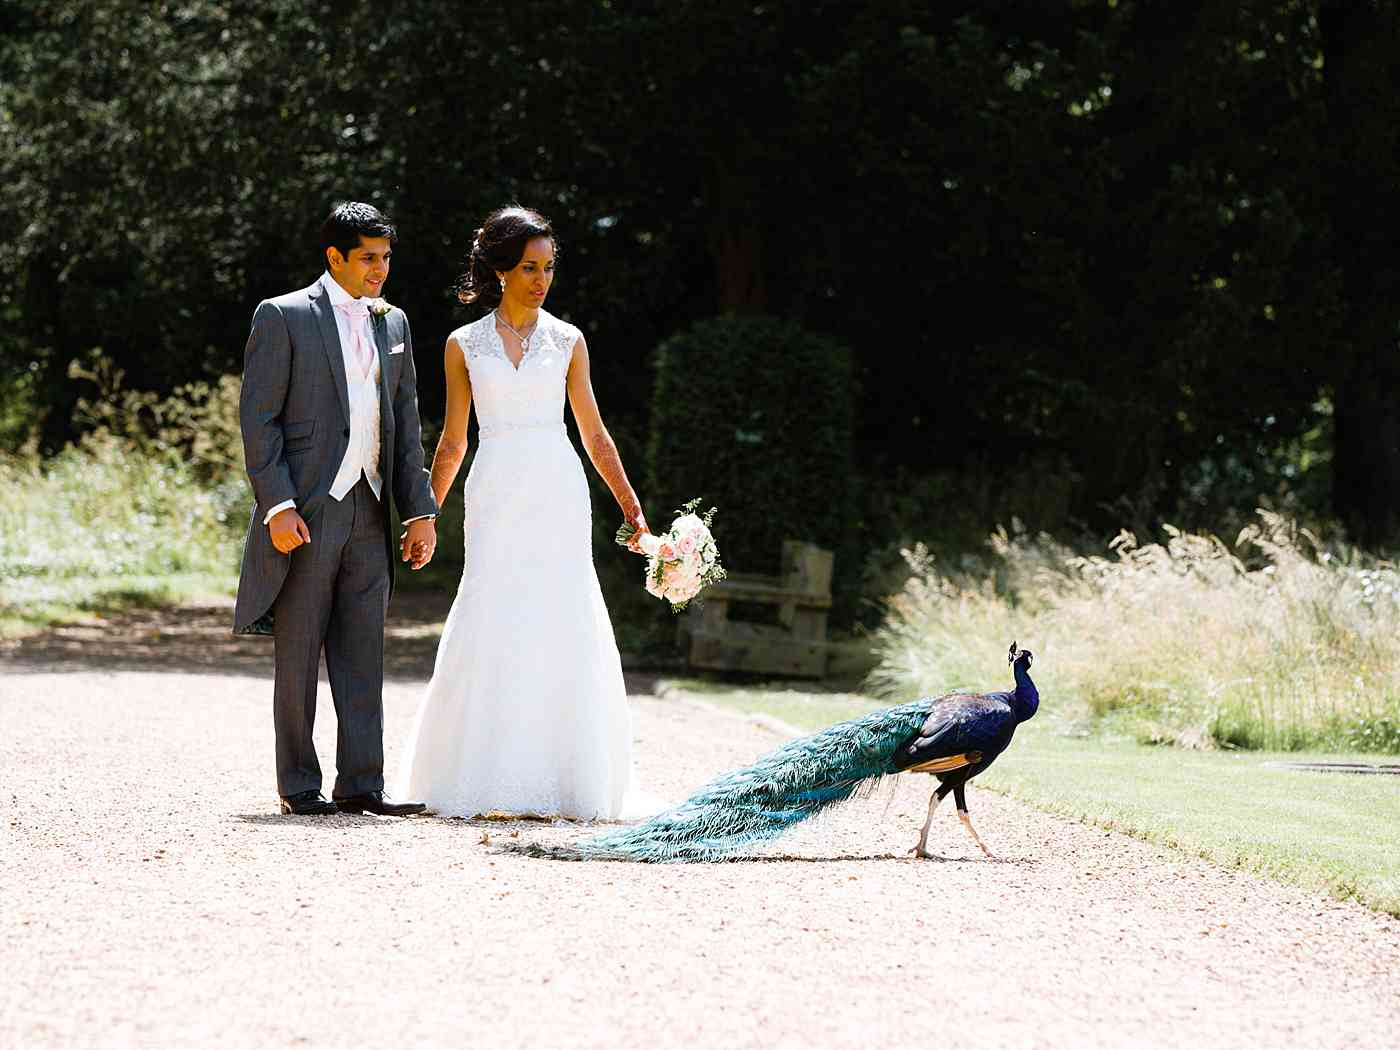 Ragley Hall peacock walking past Indian bride and groom